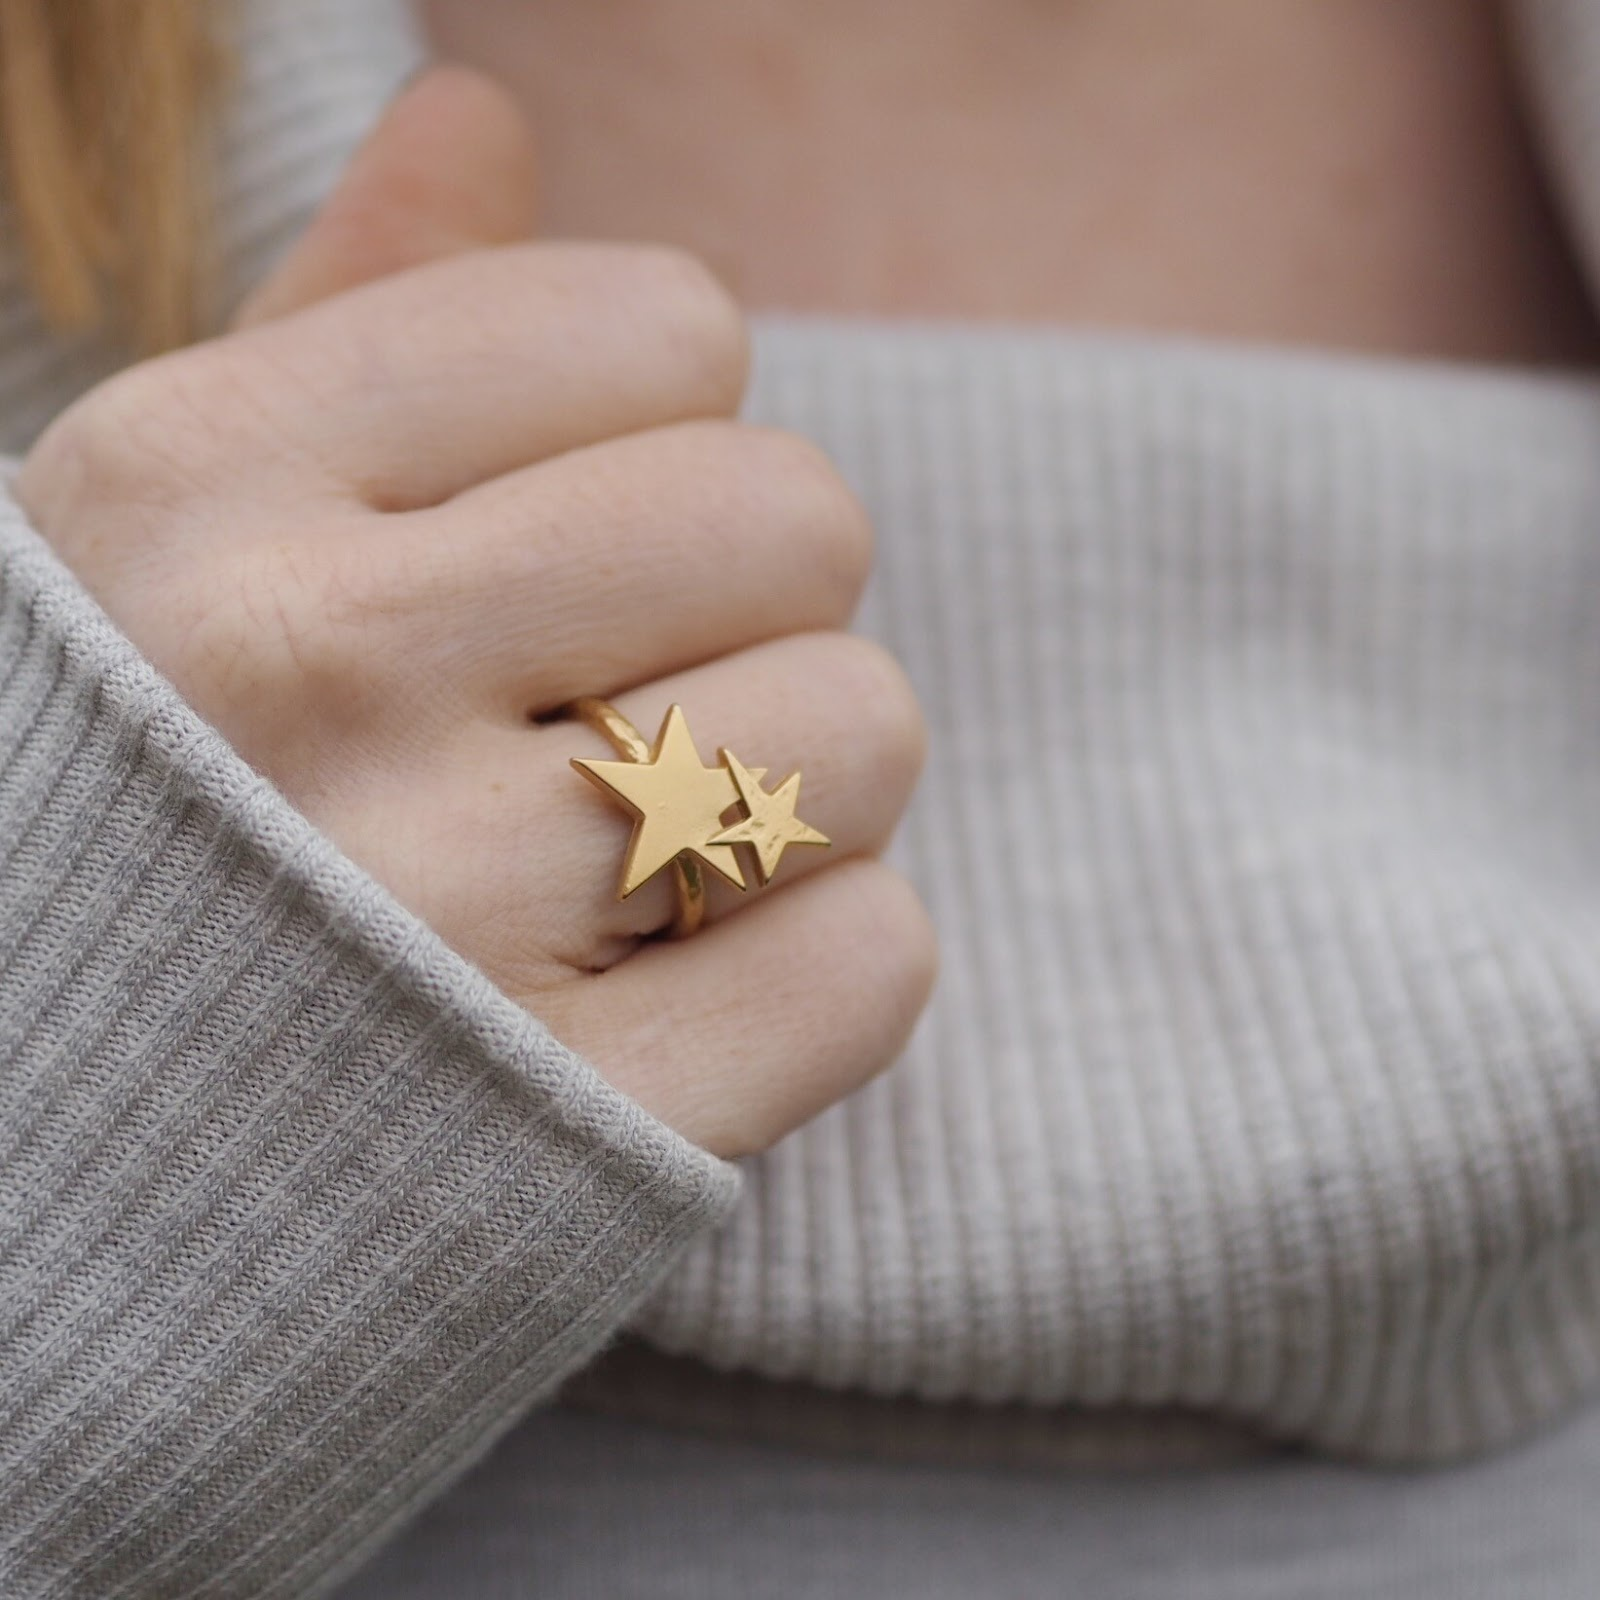 Danon jewellery gold stars ring